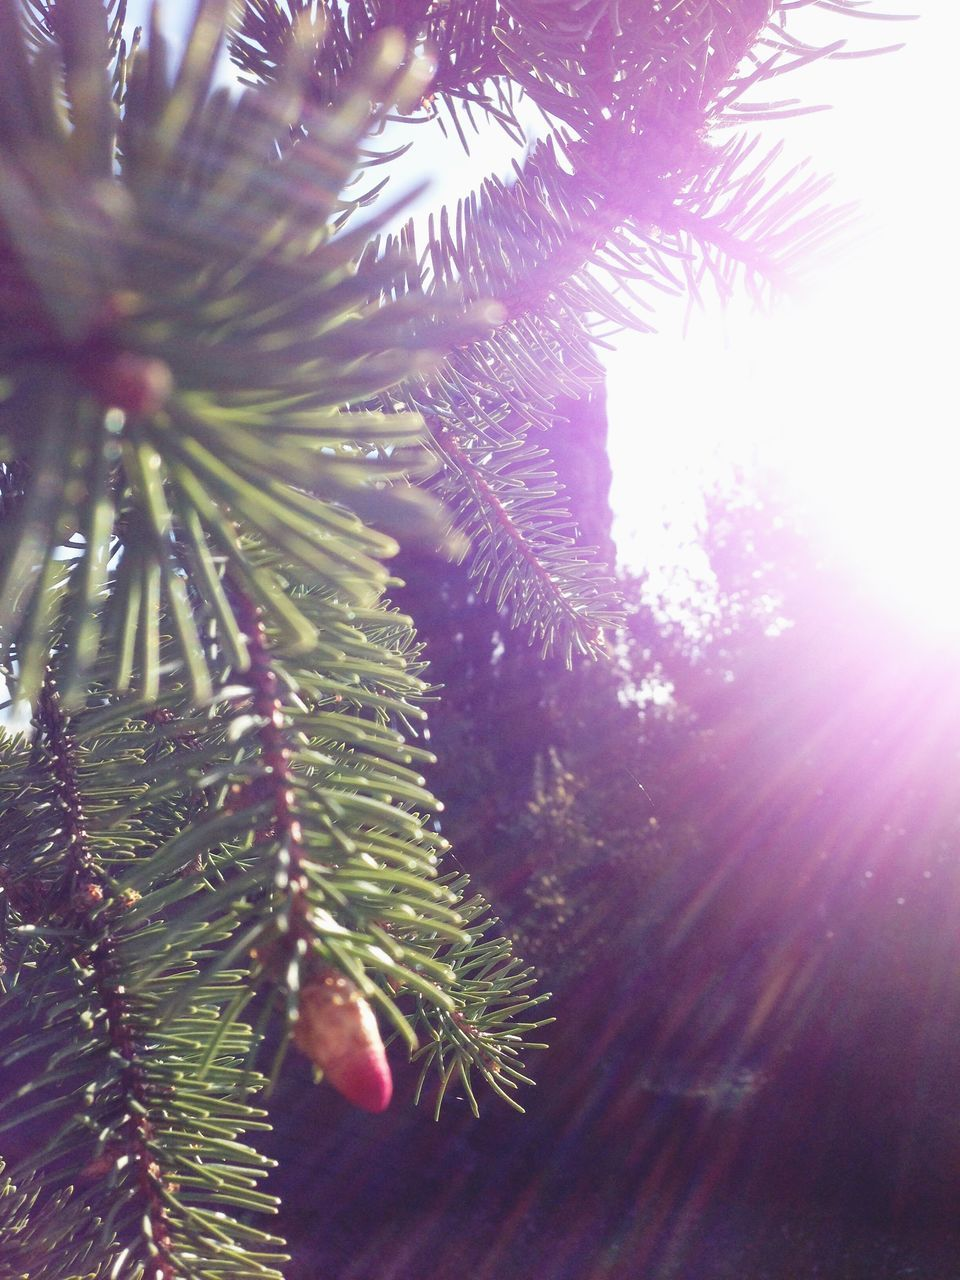 growth, nature, tree, lens flare, close-up, sunlight, no people, beauty in nature, christmas tree, needle - plant part, day, green color, branch, plant, leaf, outdoors, freshness, needle, spruce tree